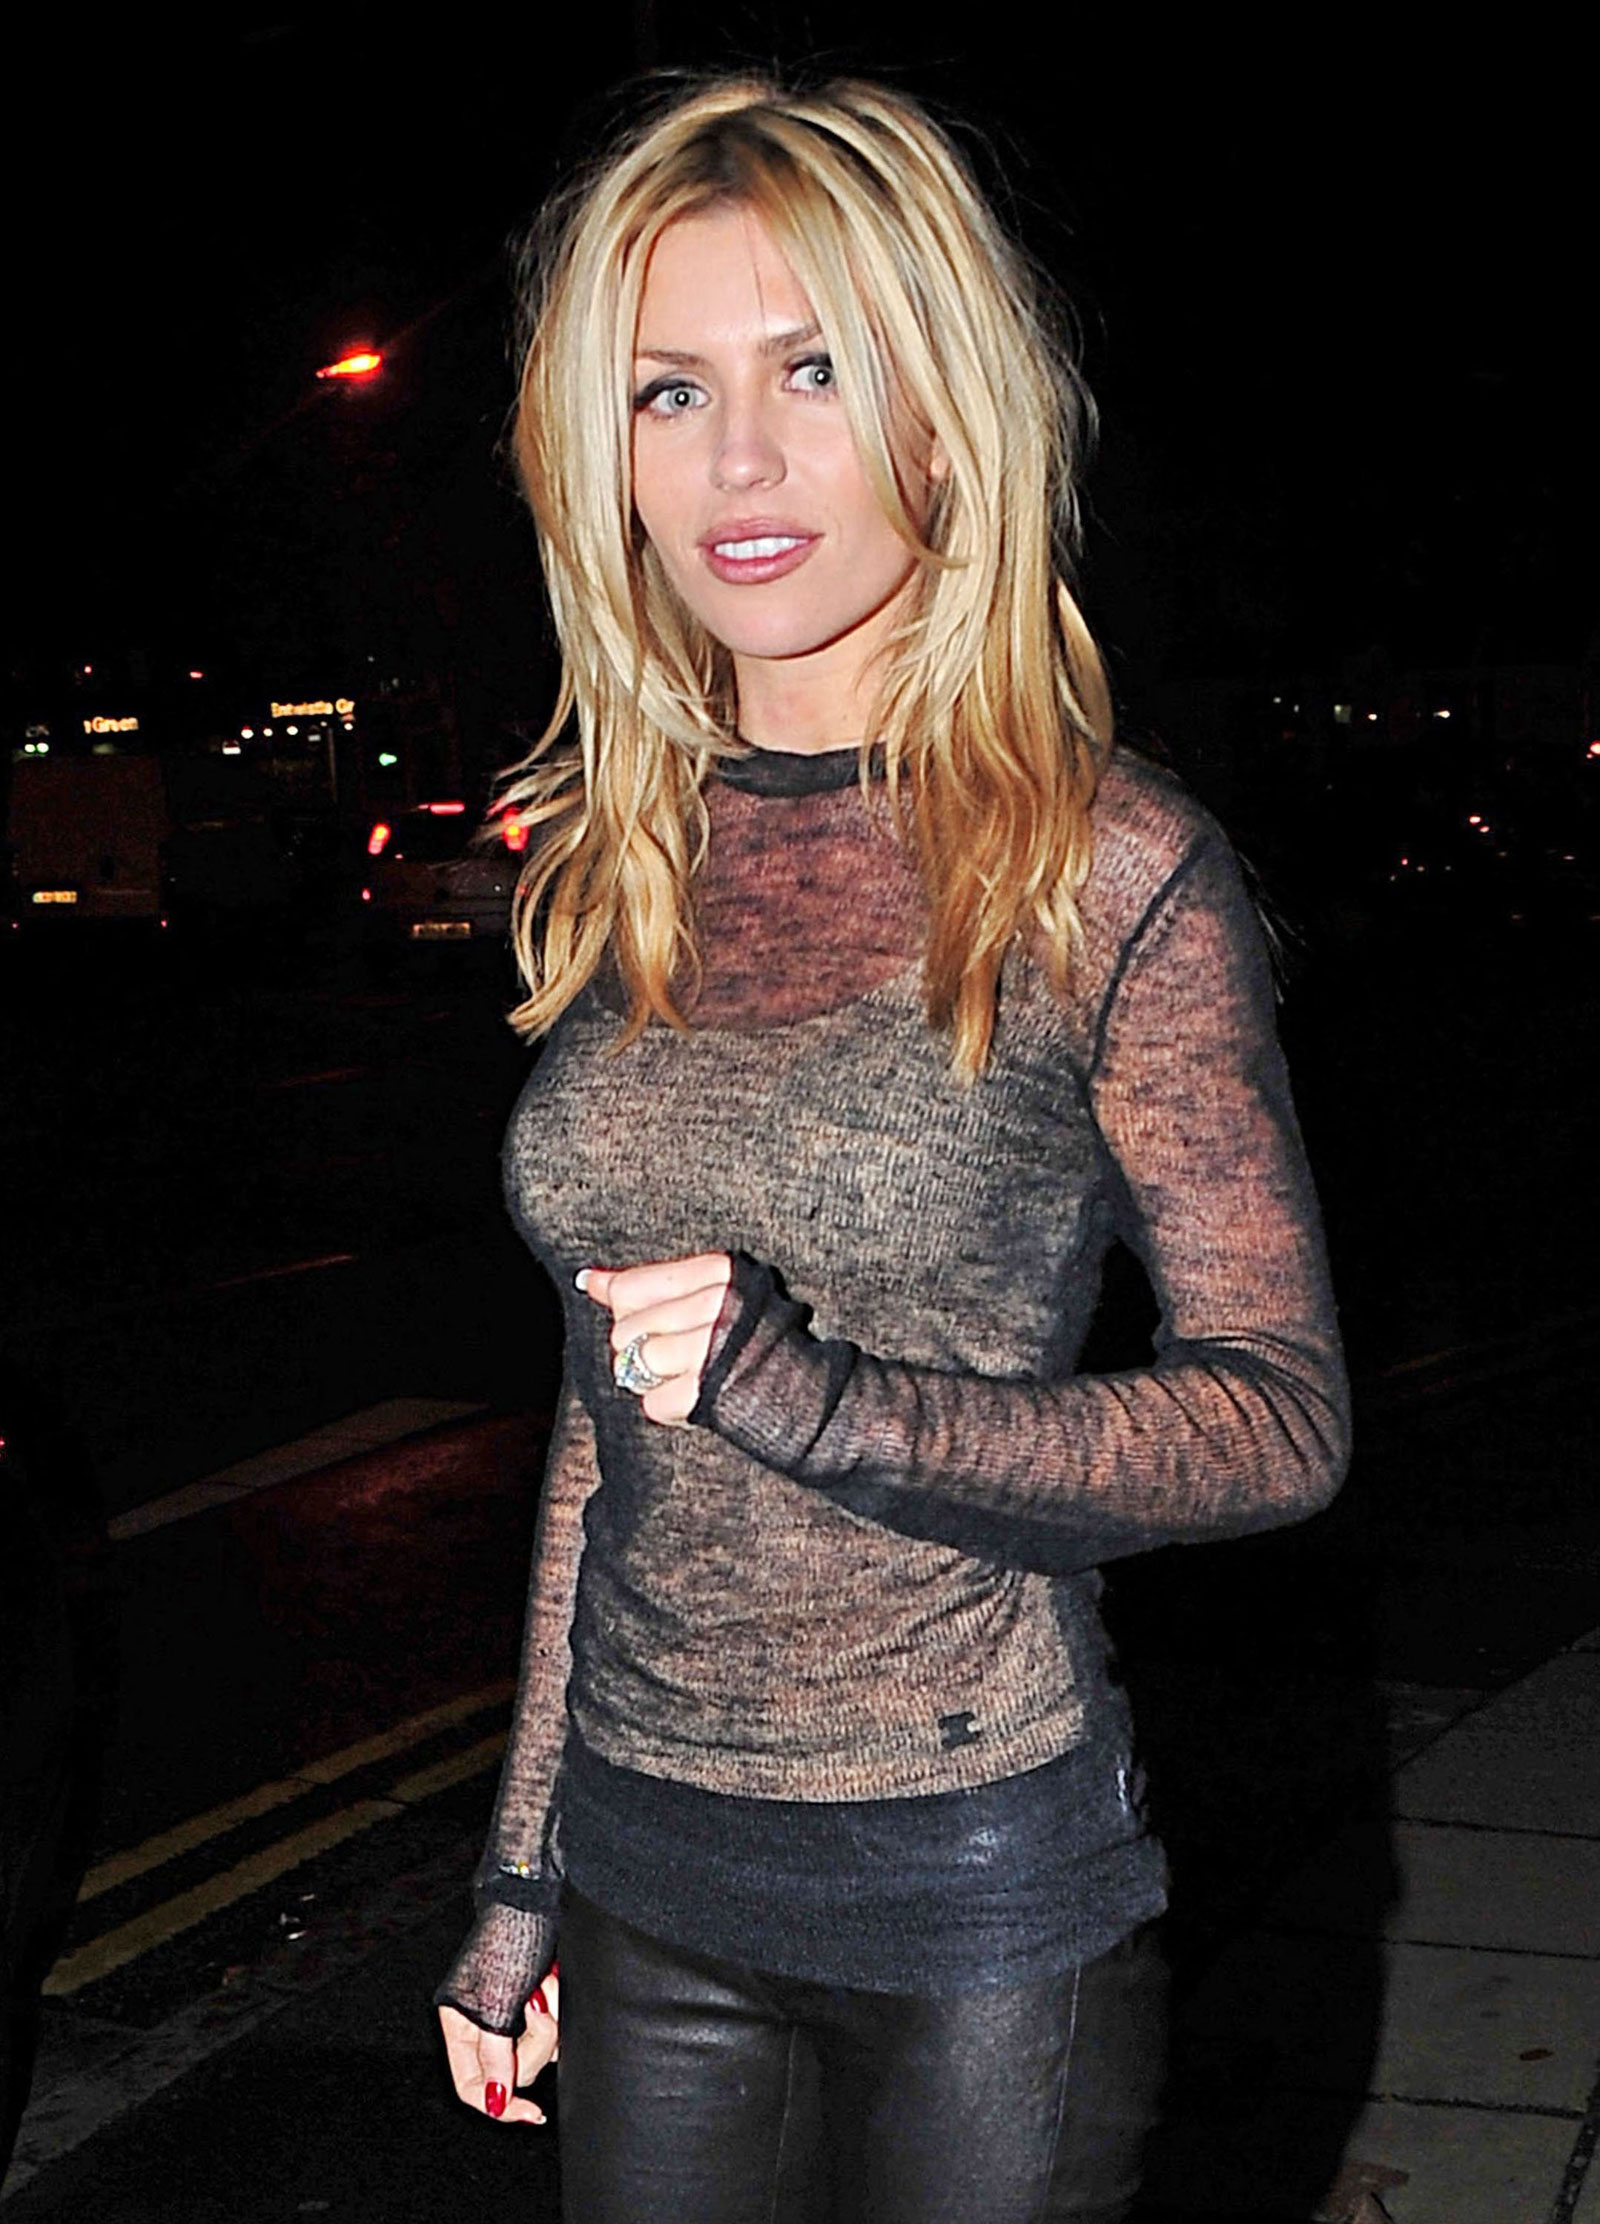 Abigail Abbey Clancy out in Liverpool - HawtCelebs